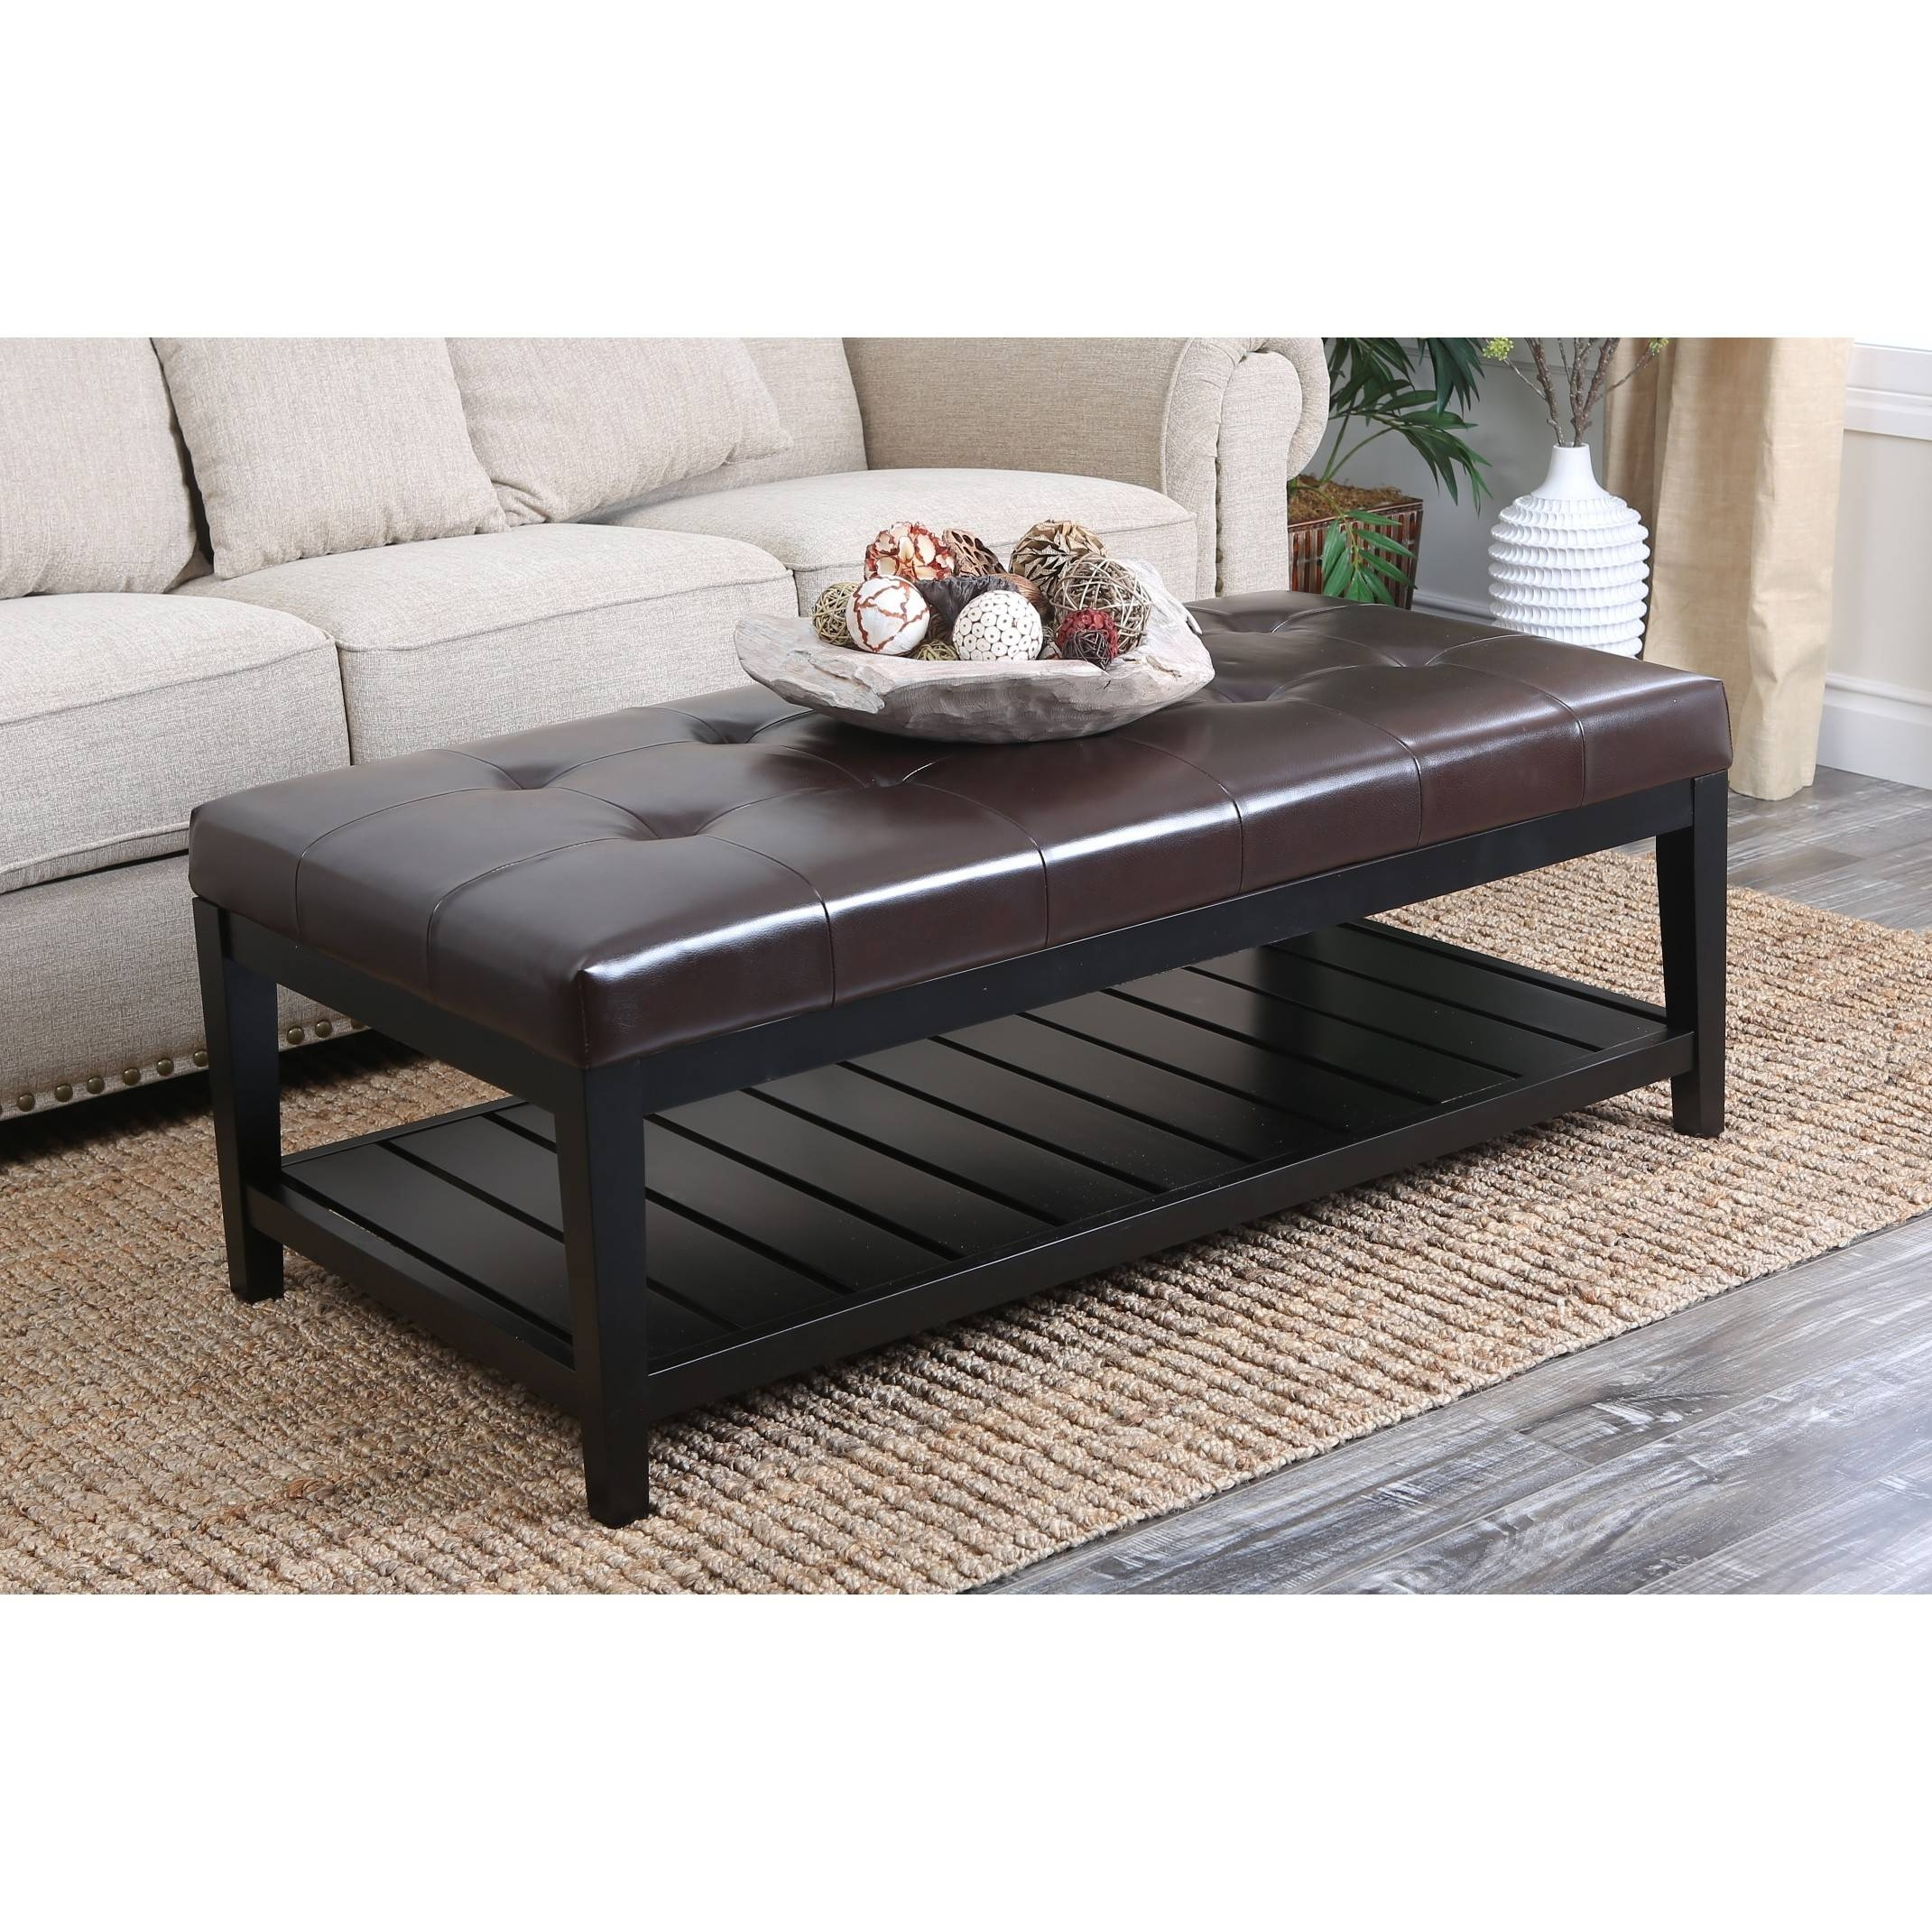 and table ideas amazon coffee furniture ashley full plans drawersles lift casters drawer amazing com of coffeele top woodboro signature phenomenal walmart free design size image drawers with